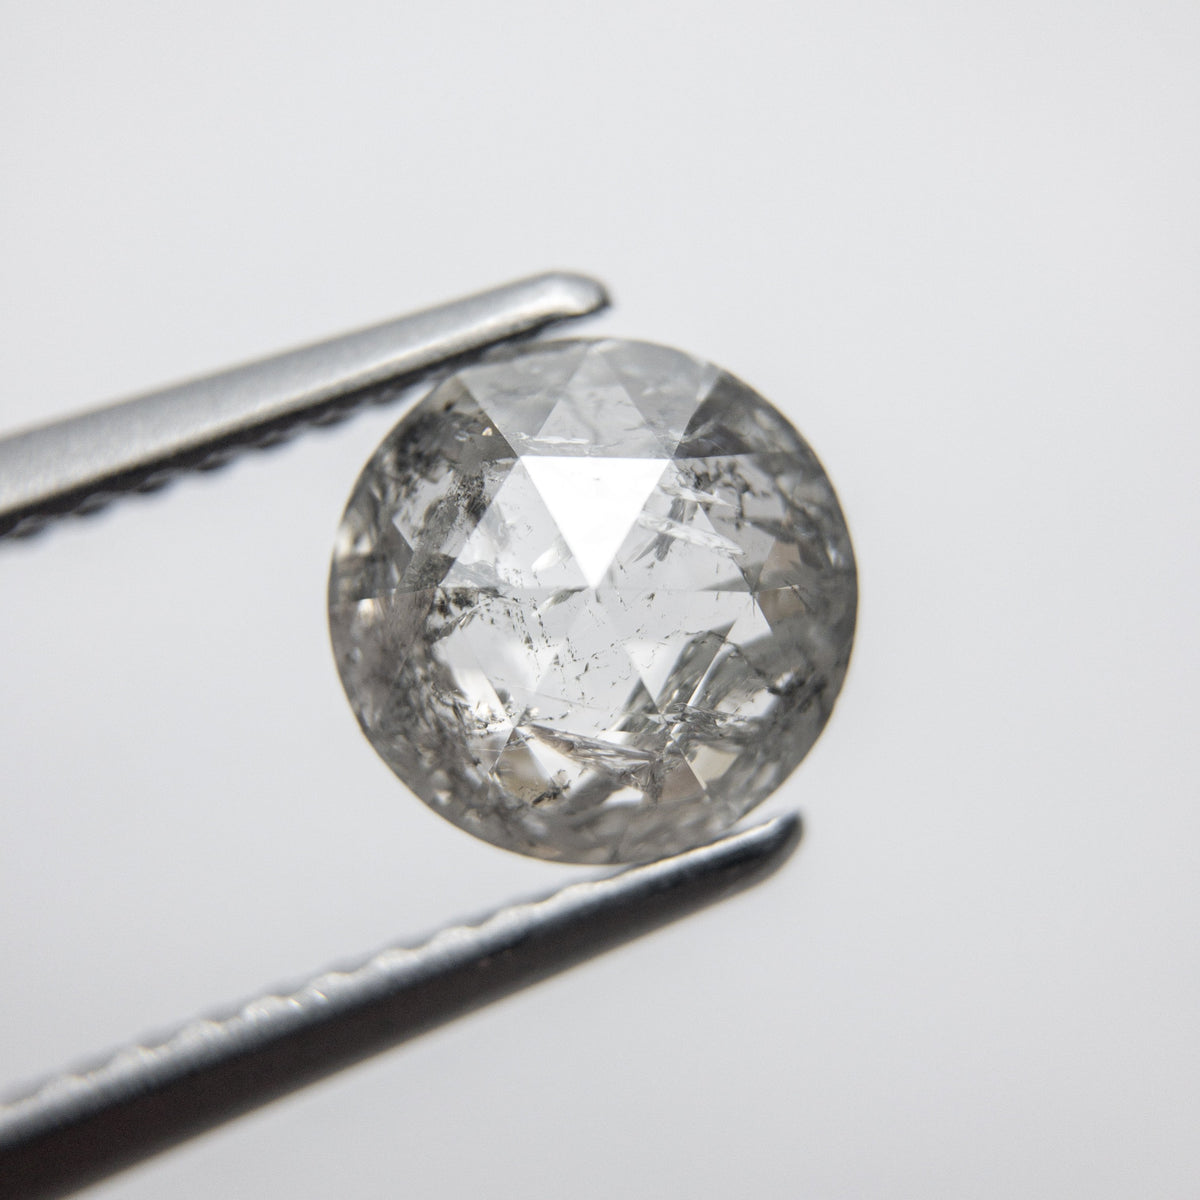 1.38ct 7.17x7.14x3.39mm Round Double Cut 18094-13